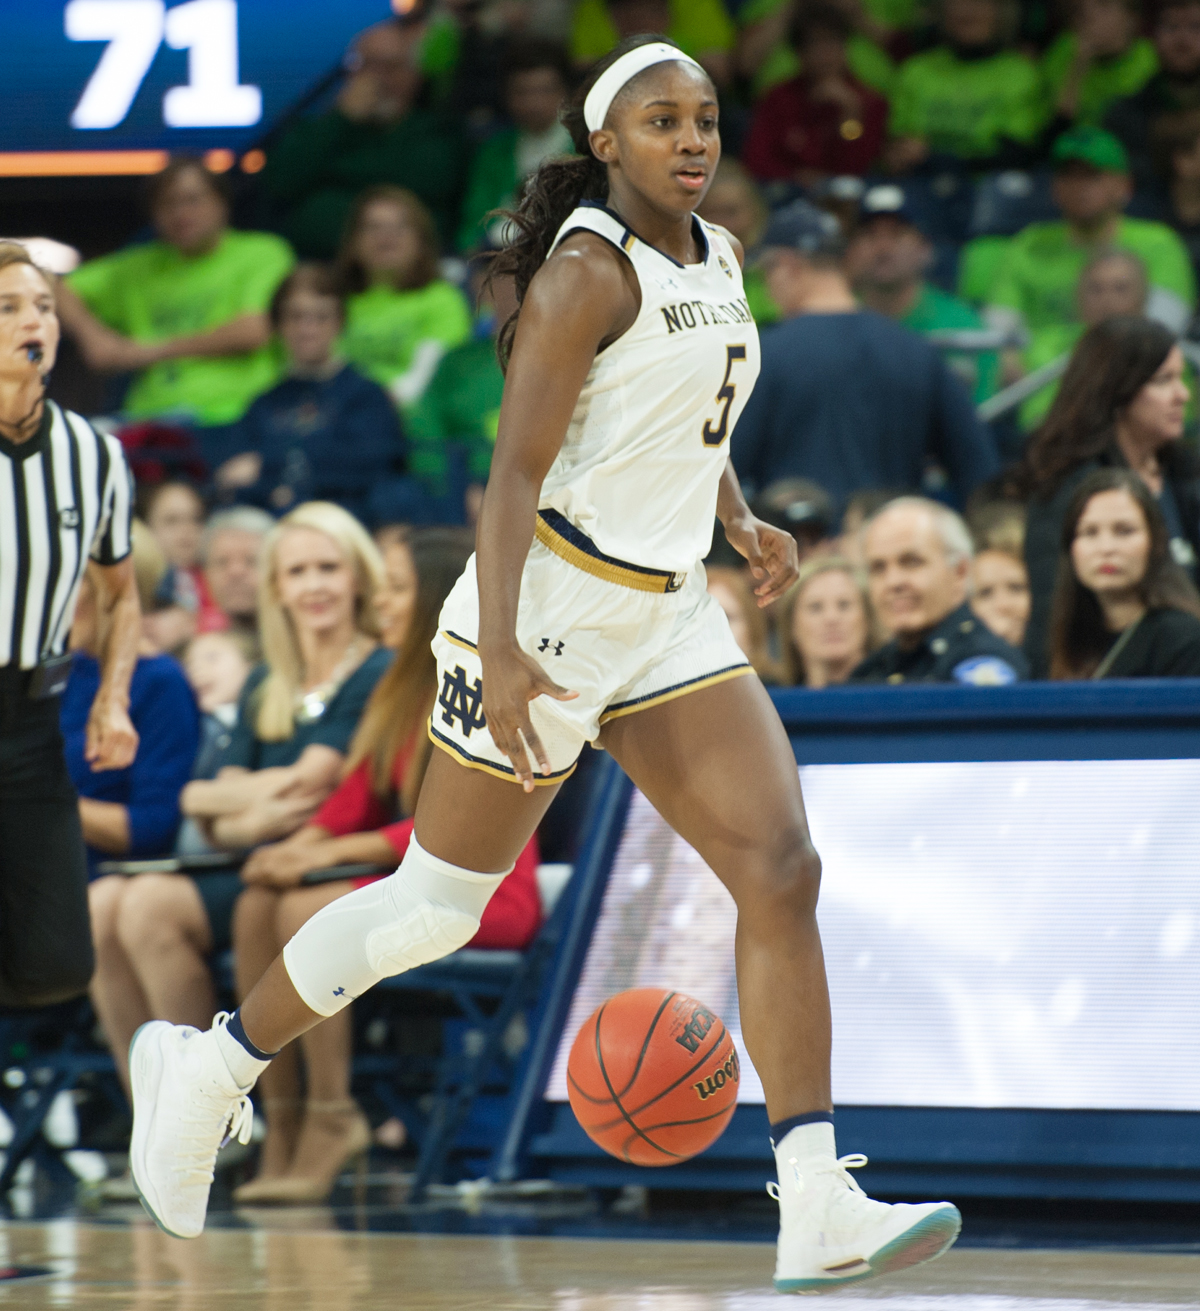 Huskies take early lead, dominate No. 1 Irish